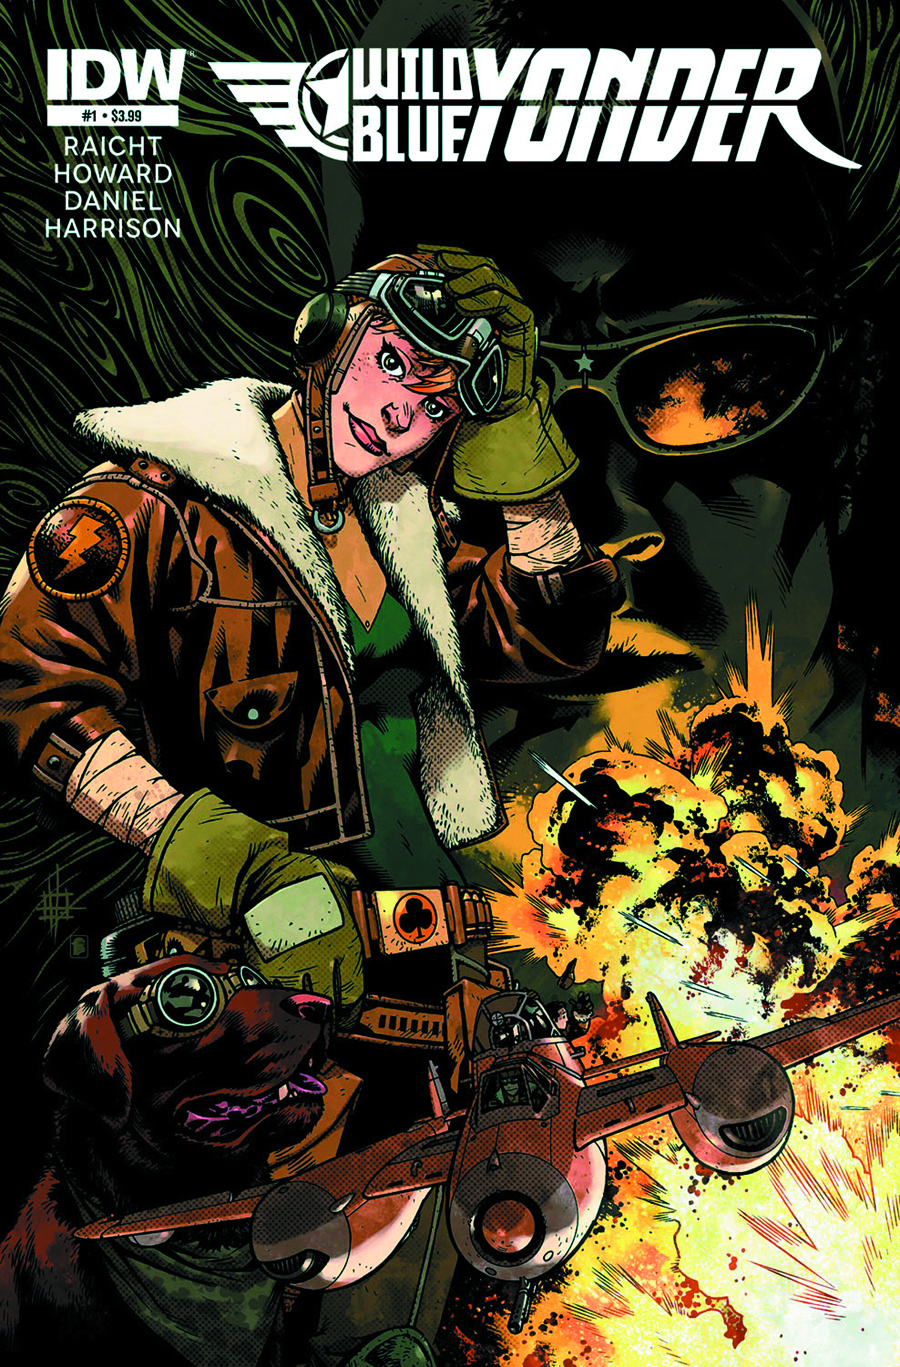 (USE JUL138415) WILD BLUE YONDER #1 (OF 5) 2ND PTG